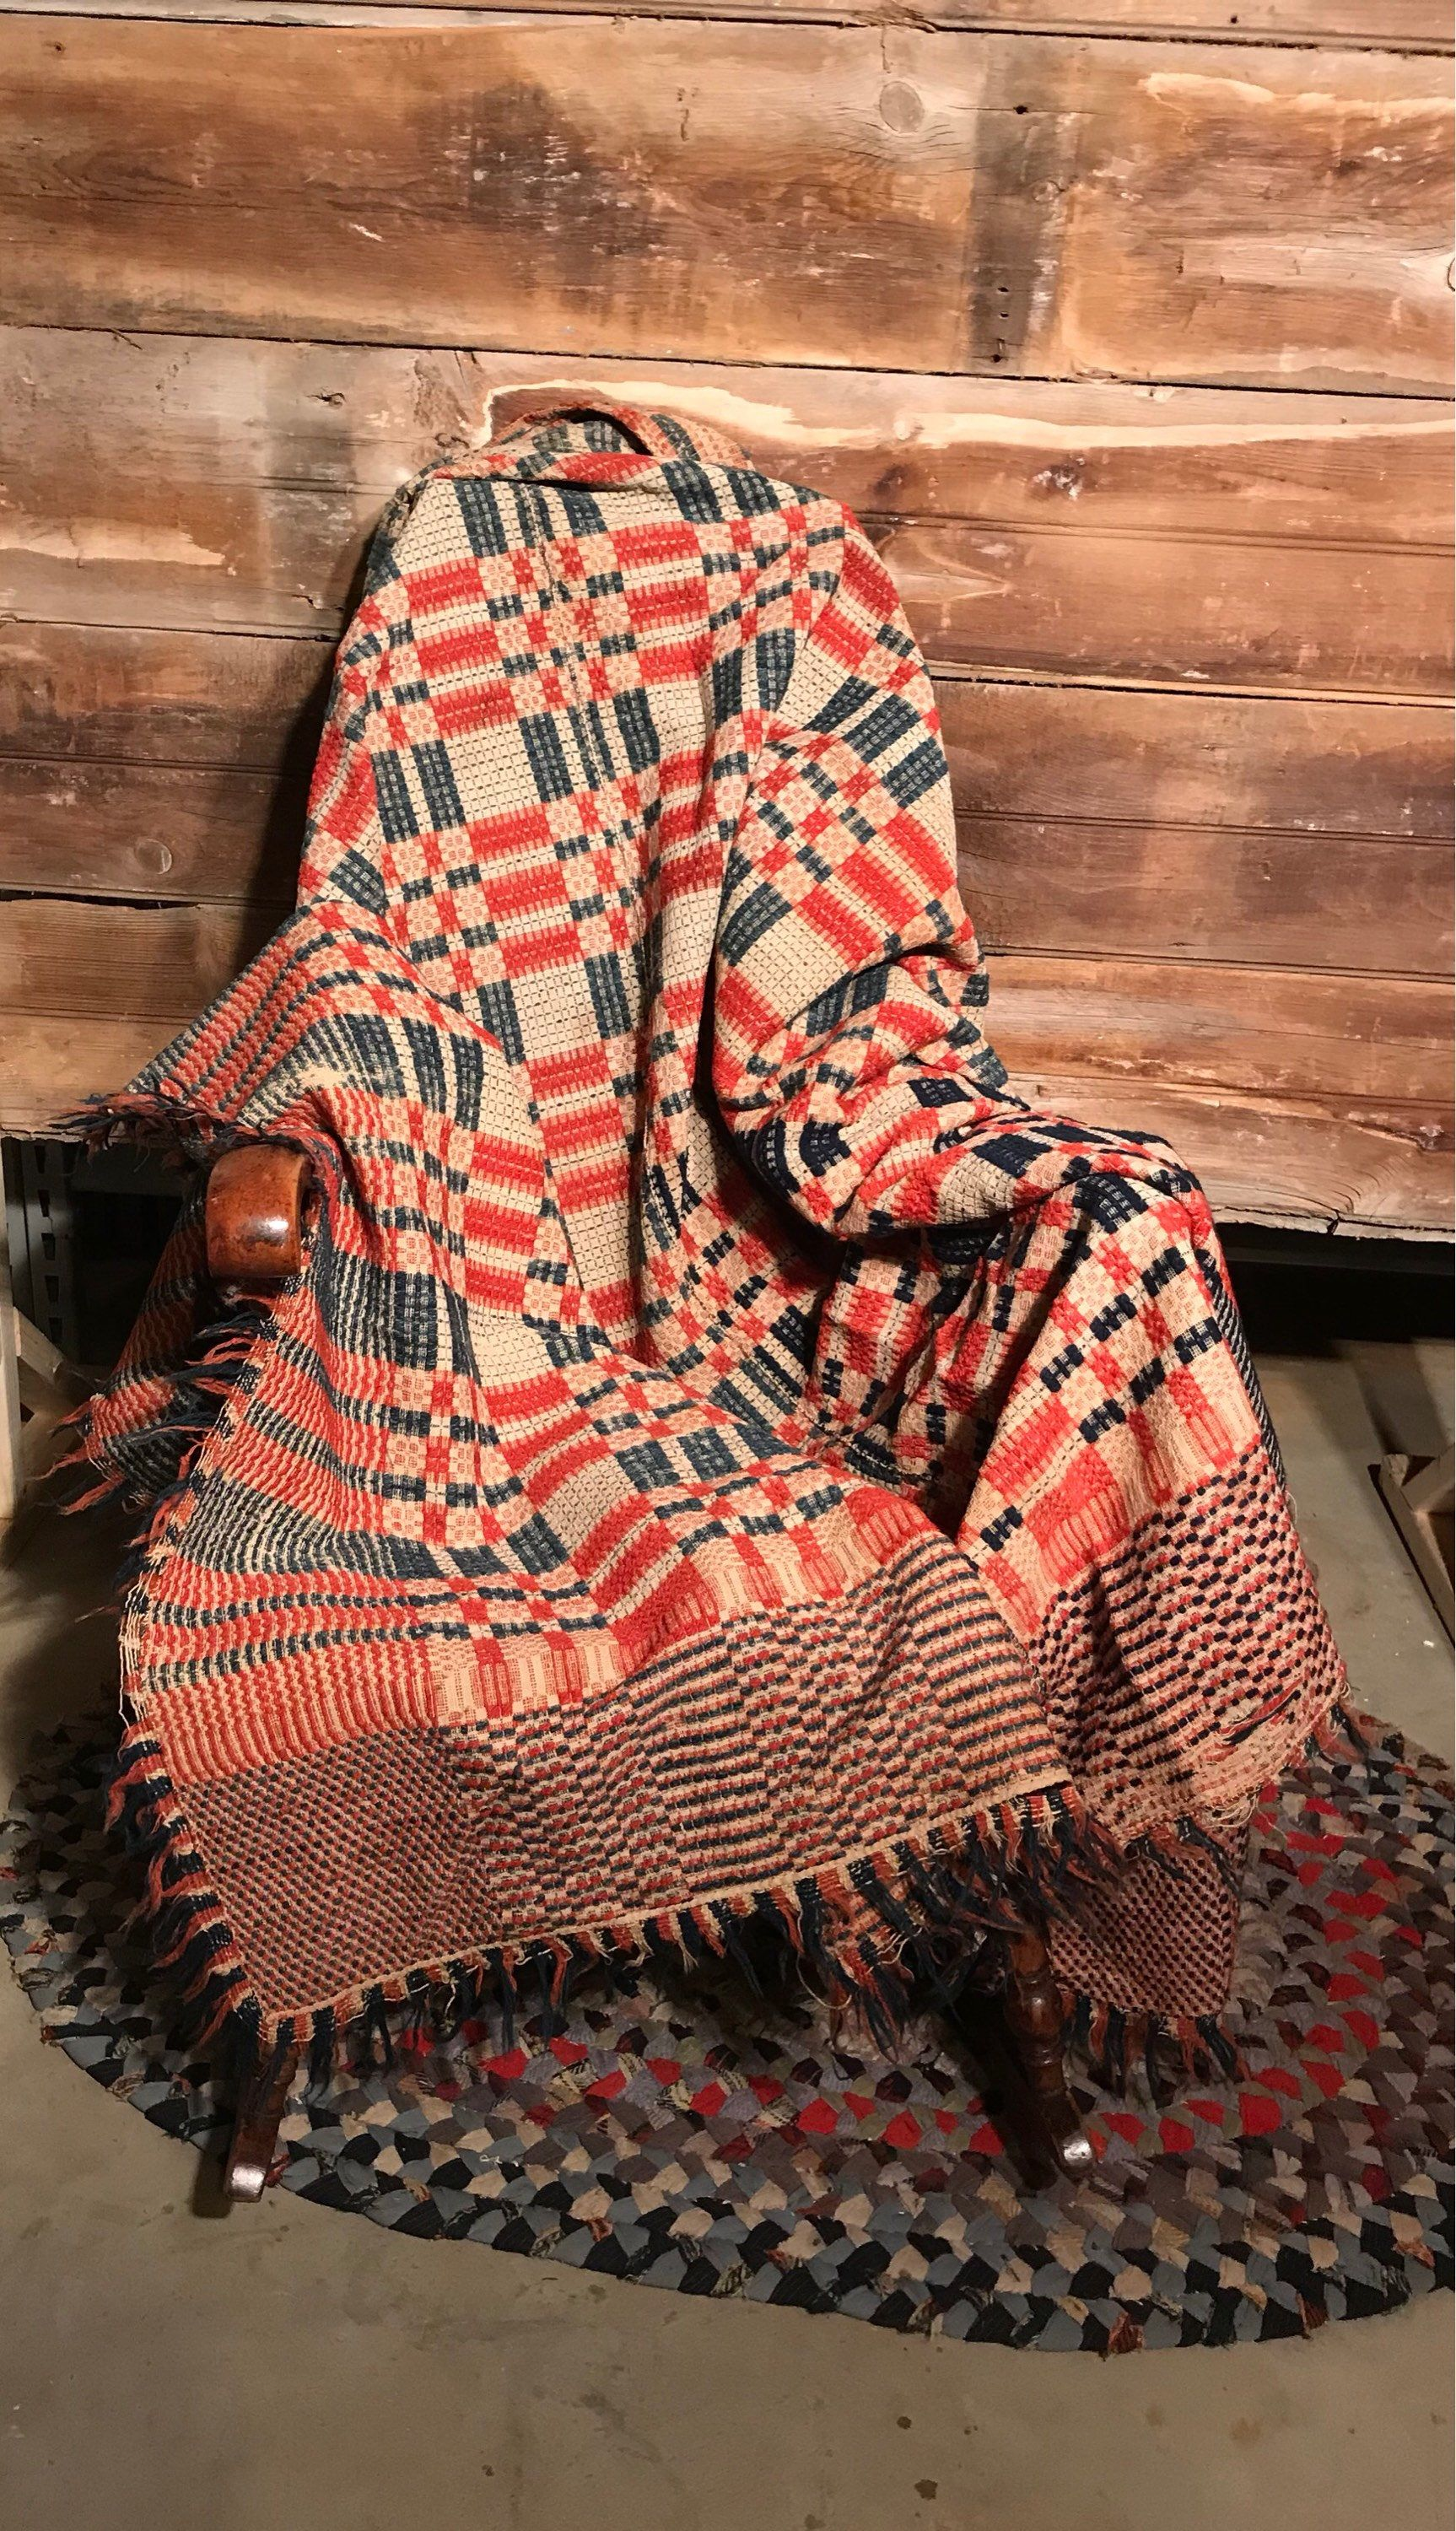 Antique Coverlet * Overshot Coverlet * 1800u0027s * Early American * Americana  * Woven Coverlet * Wool Coverlet * Red White And Blue Coverlet